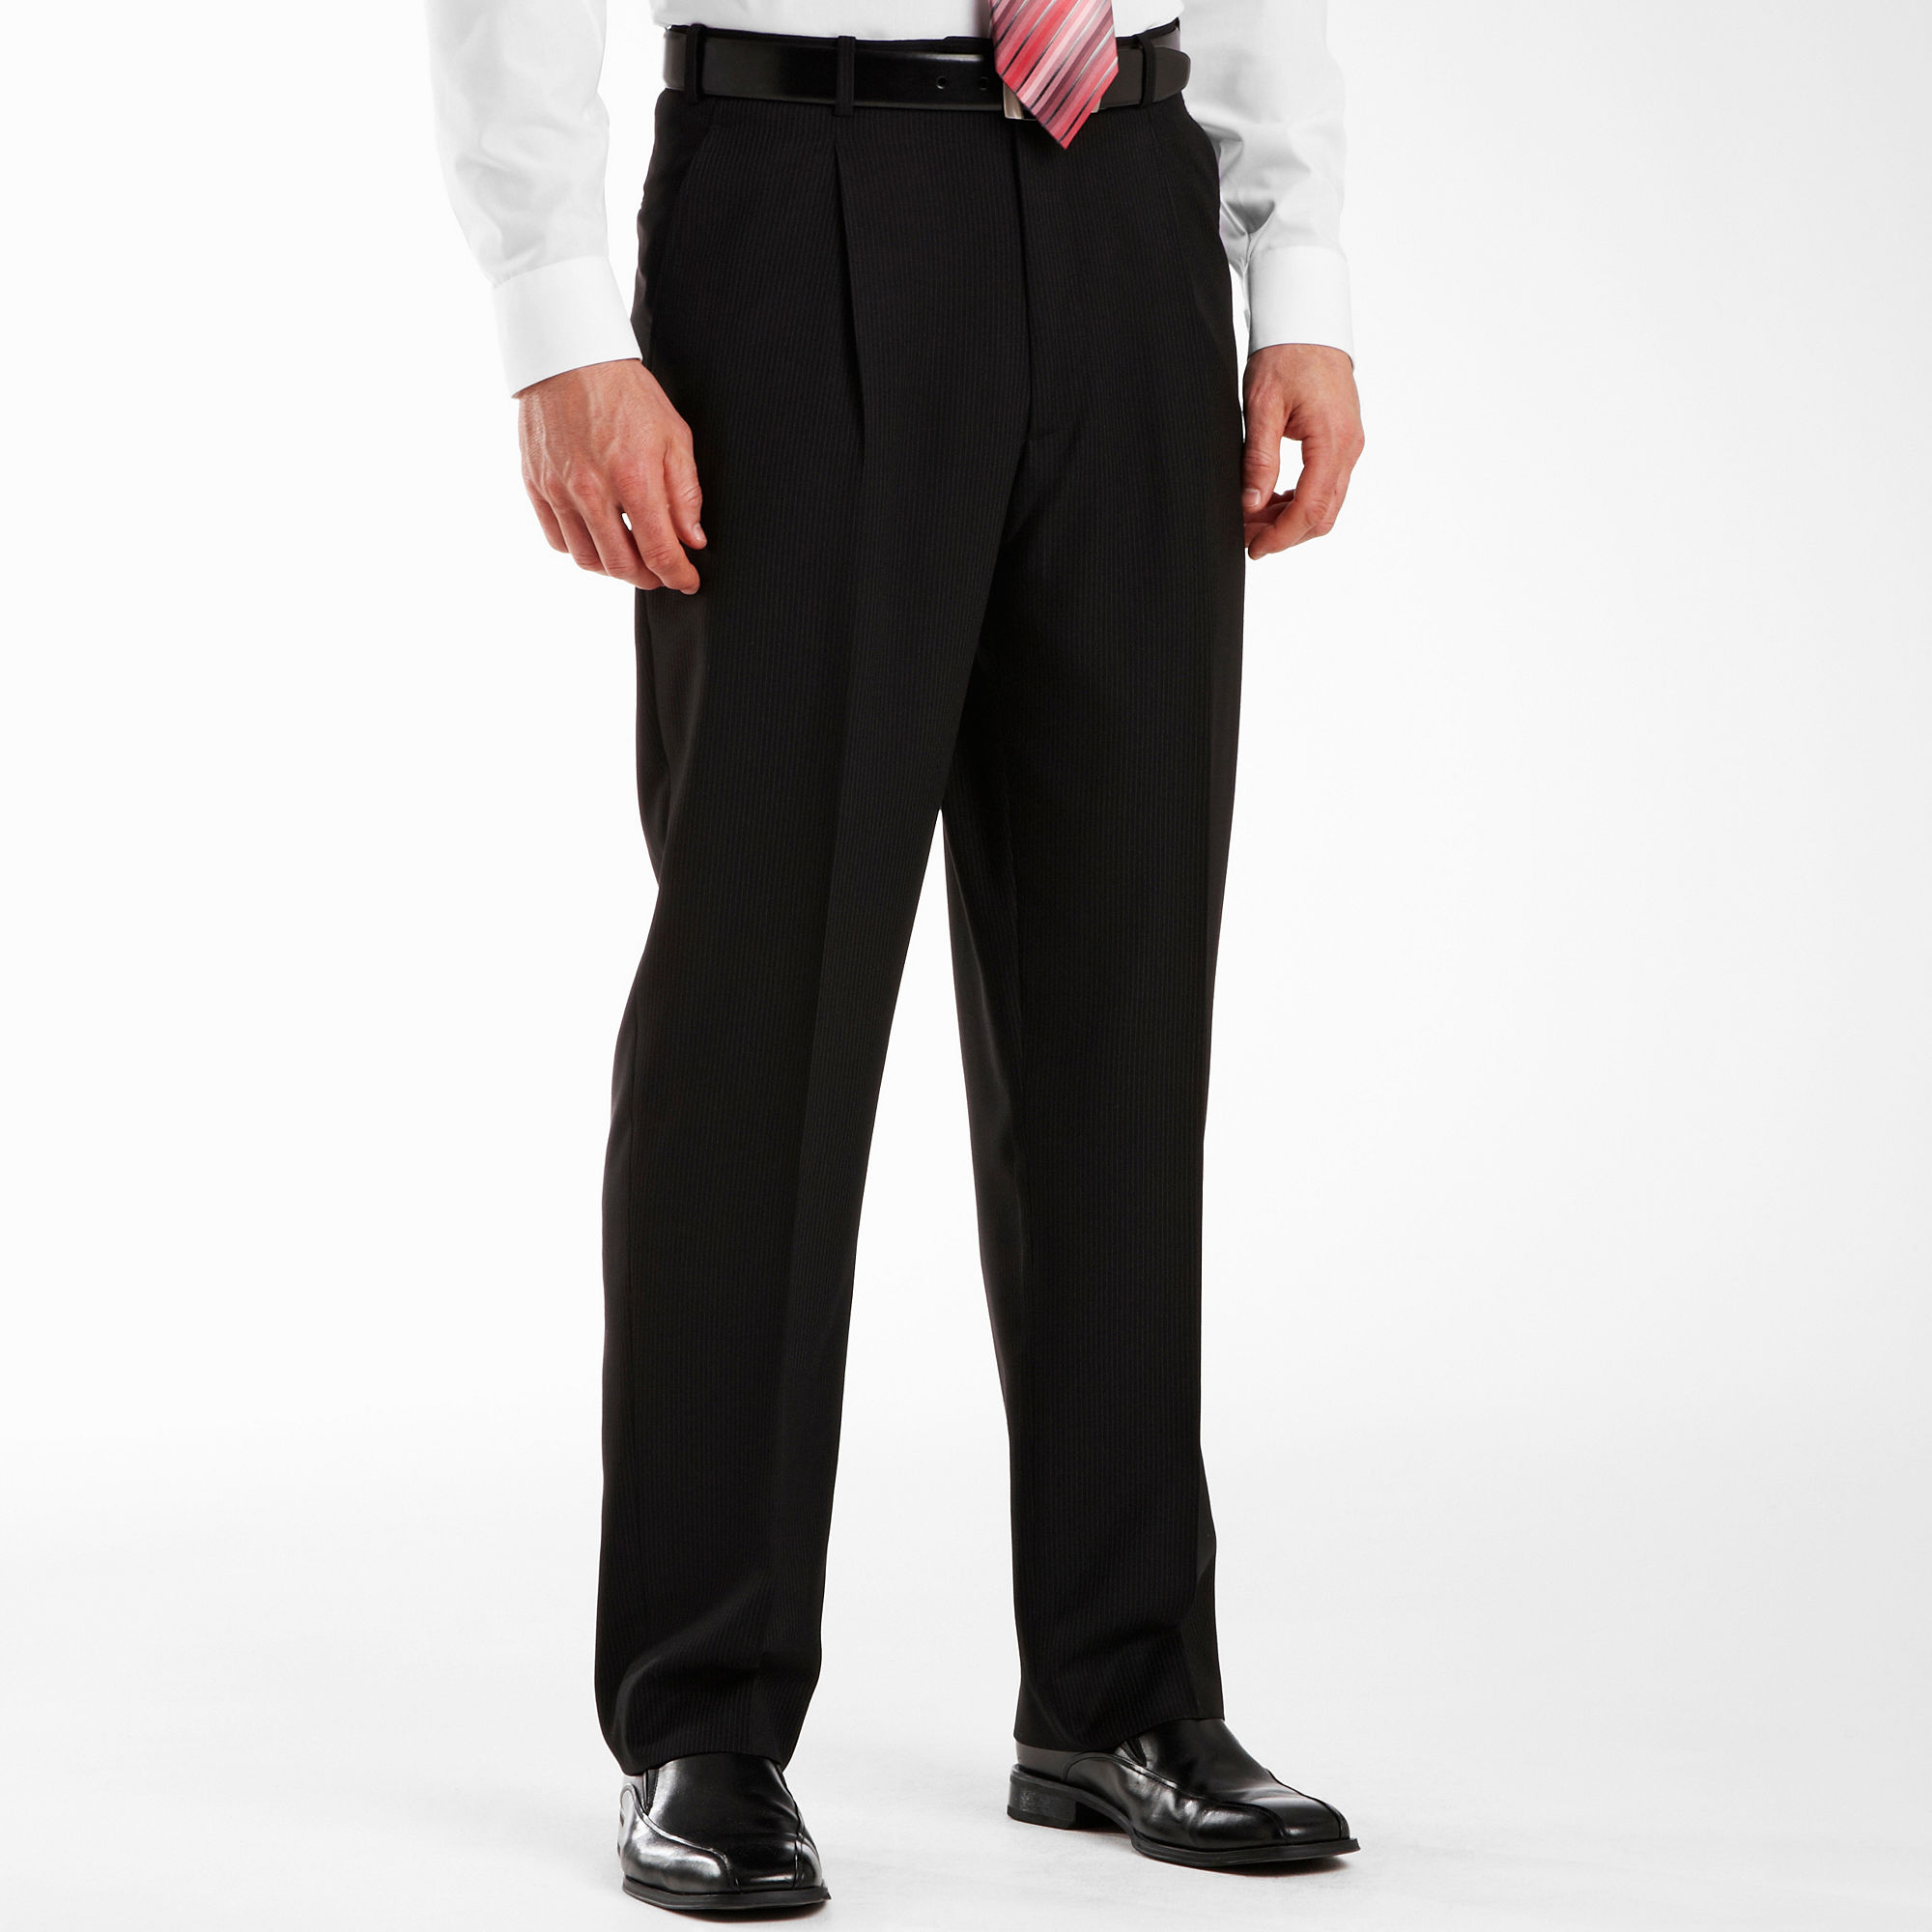 Adolfo Pleated Black Striped Suit Pants